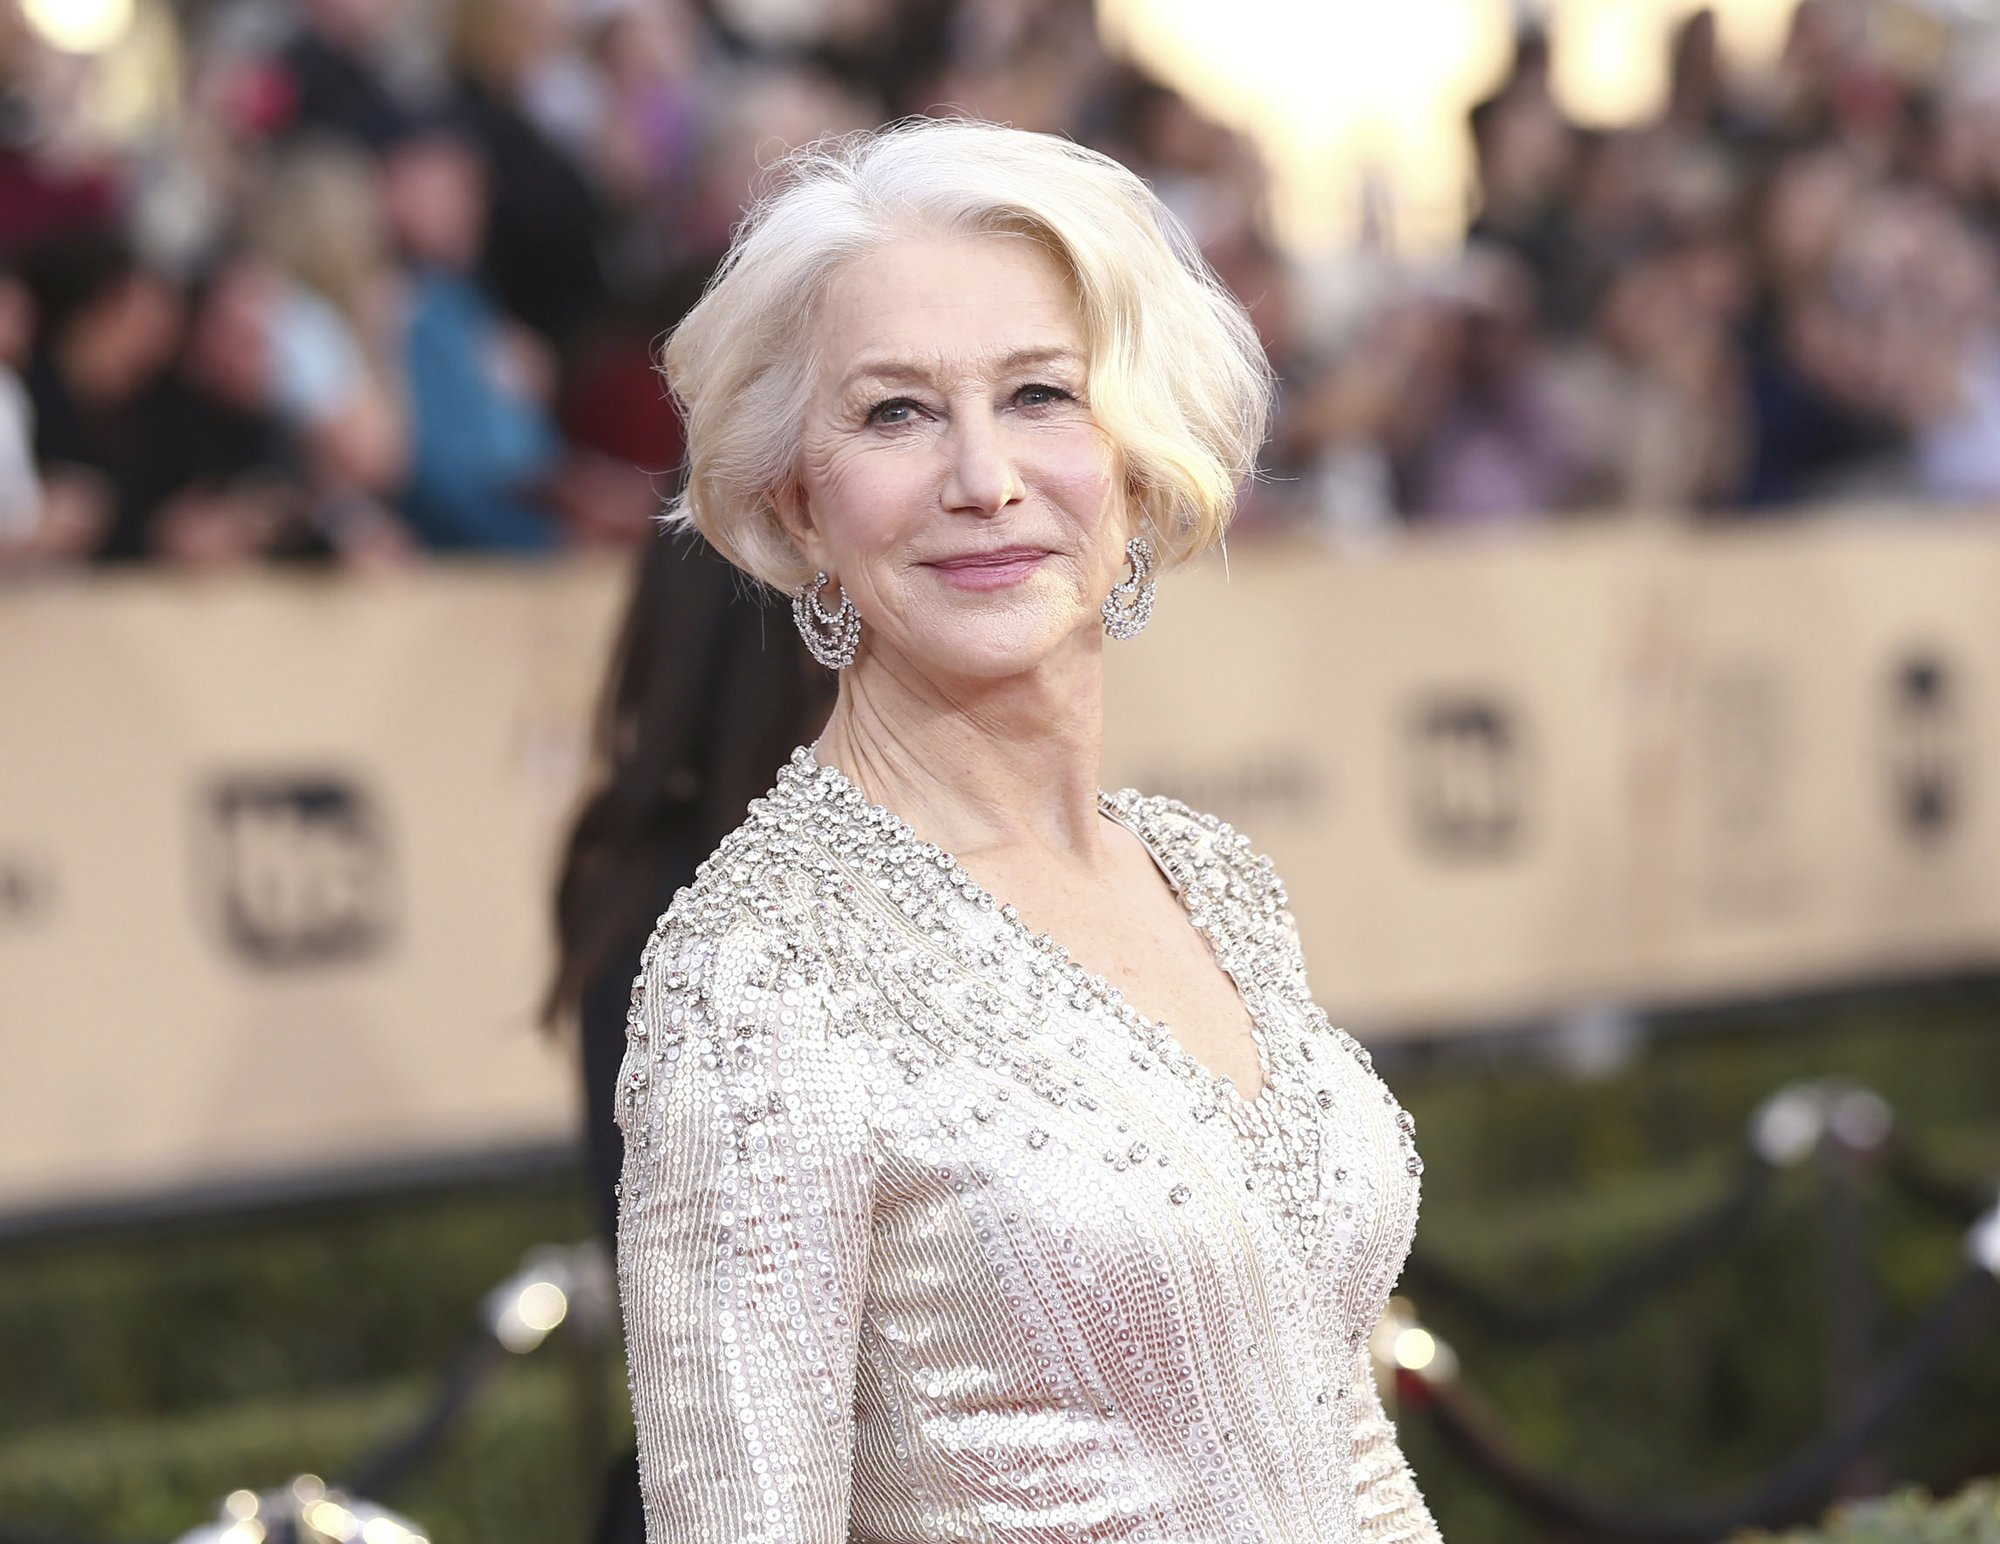 Dogs and babies among Helen Mirren's acting inspirations